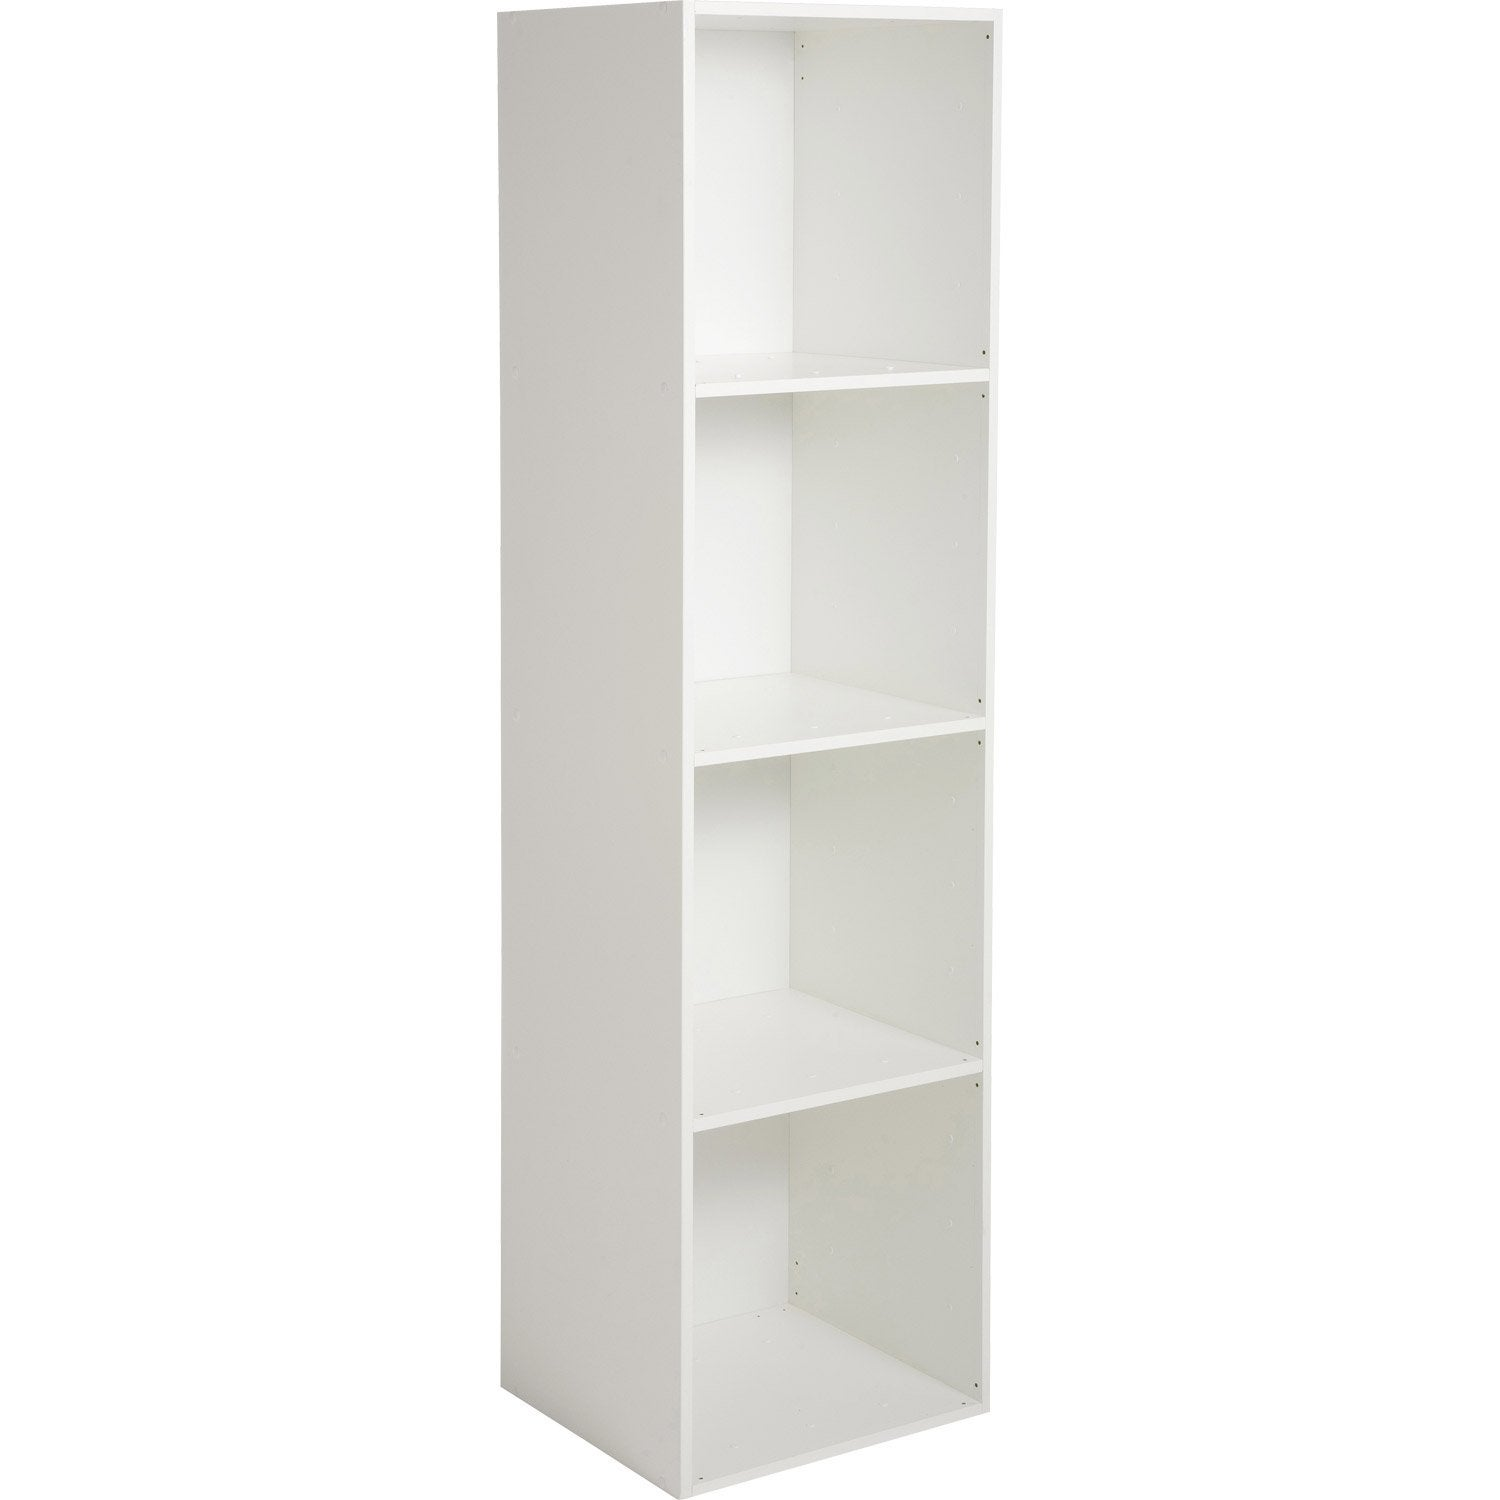 Etag re 4 cases multikaz blanc x x - Etagere castorama rangement ...